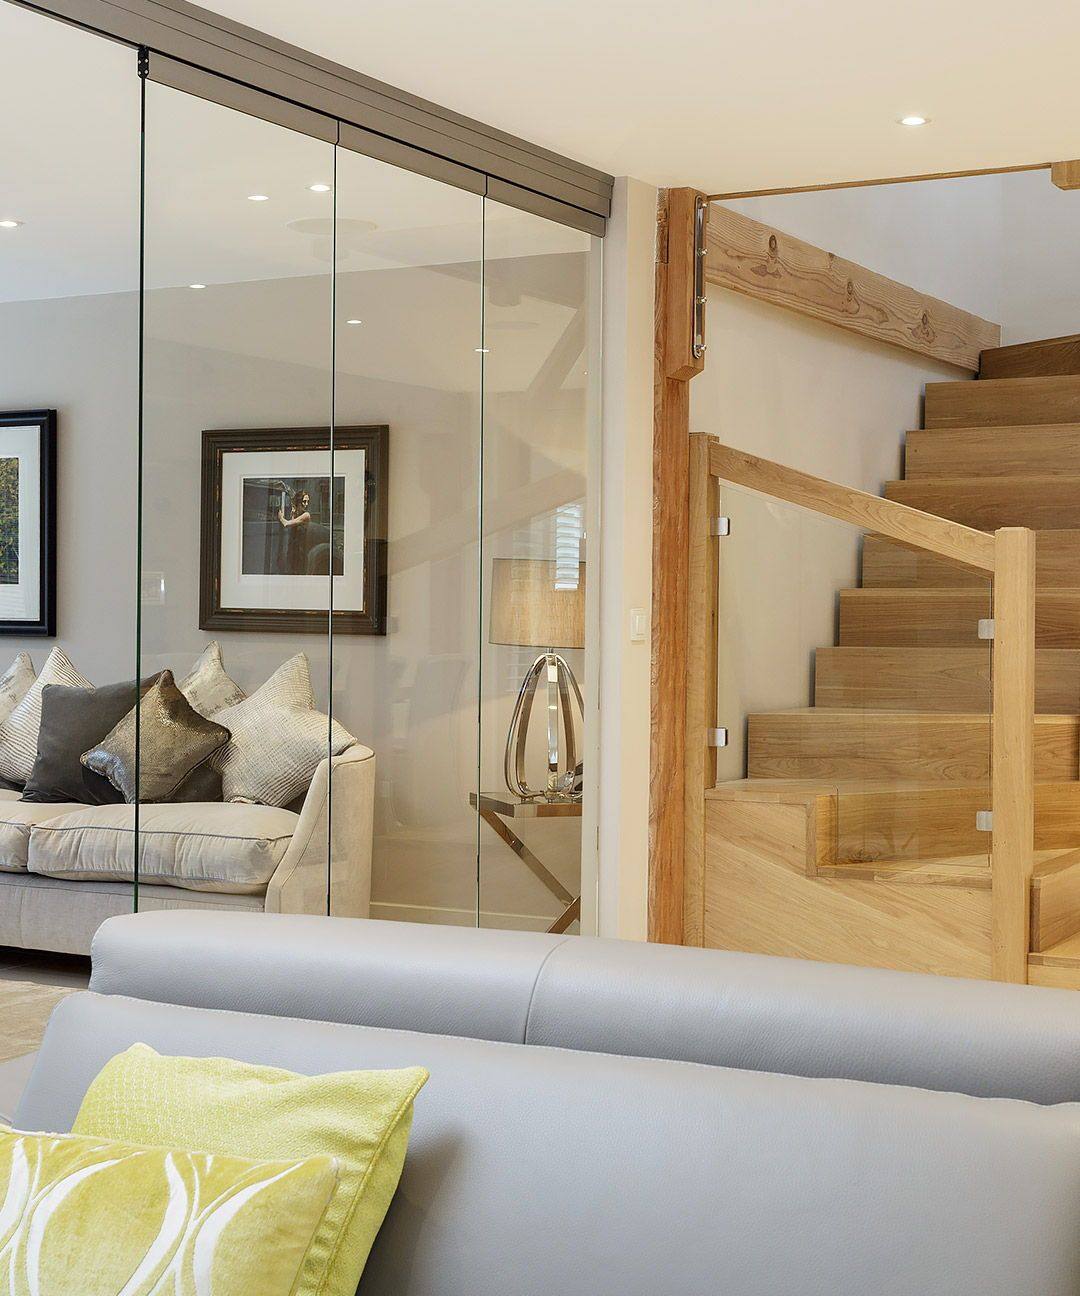 Timber Staircase With Modern Open Plan Living Space With Glass Doors White Wall With Timber Beams Modern House Bungalow Design Self Build Houses Timber House #open #stairs #in #living #room